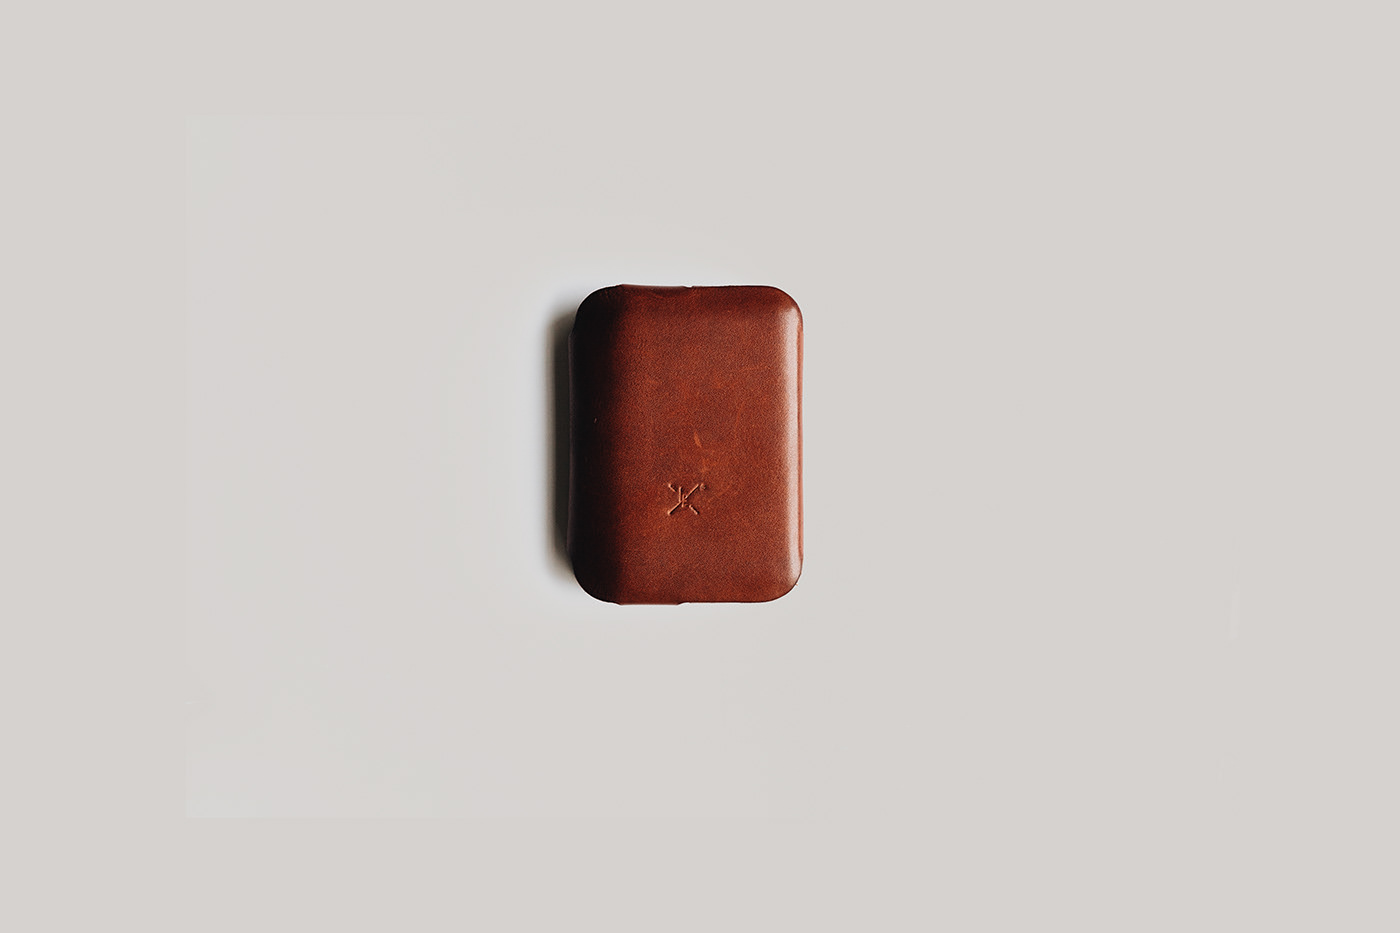 adolfo navarro Fashion  leather leather design Mexican Design mexico minimal object product design  WALLET